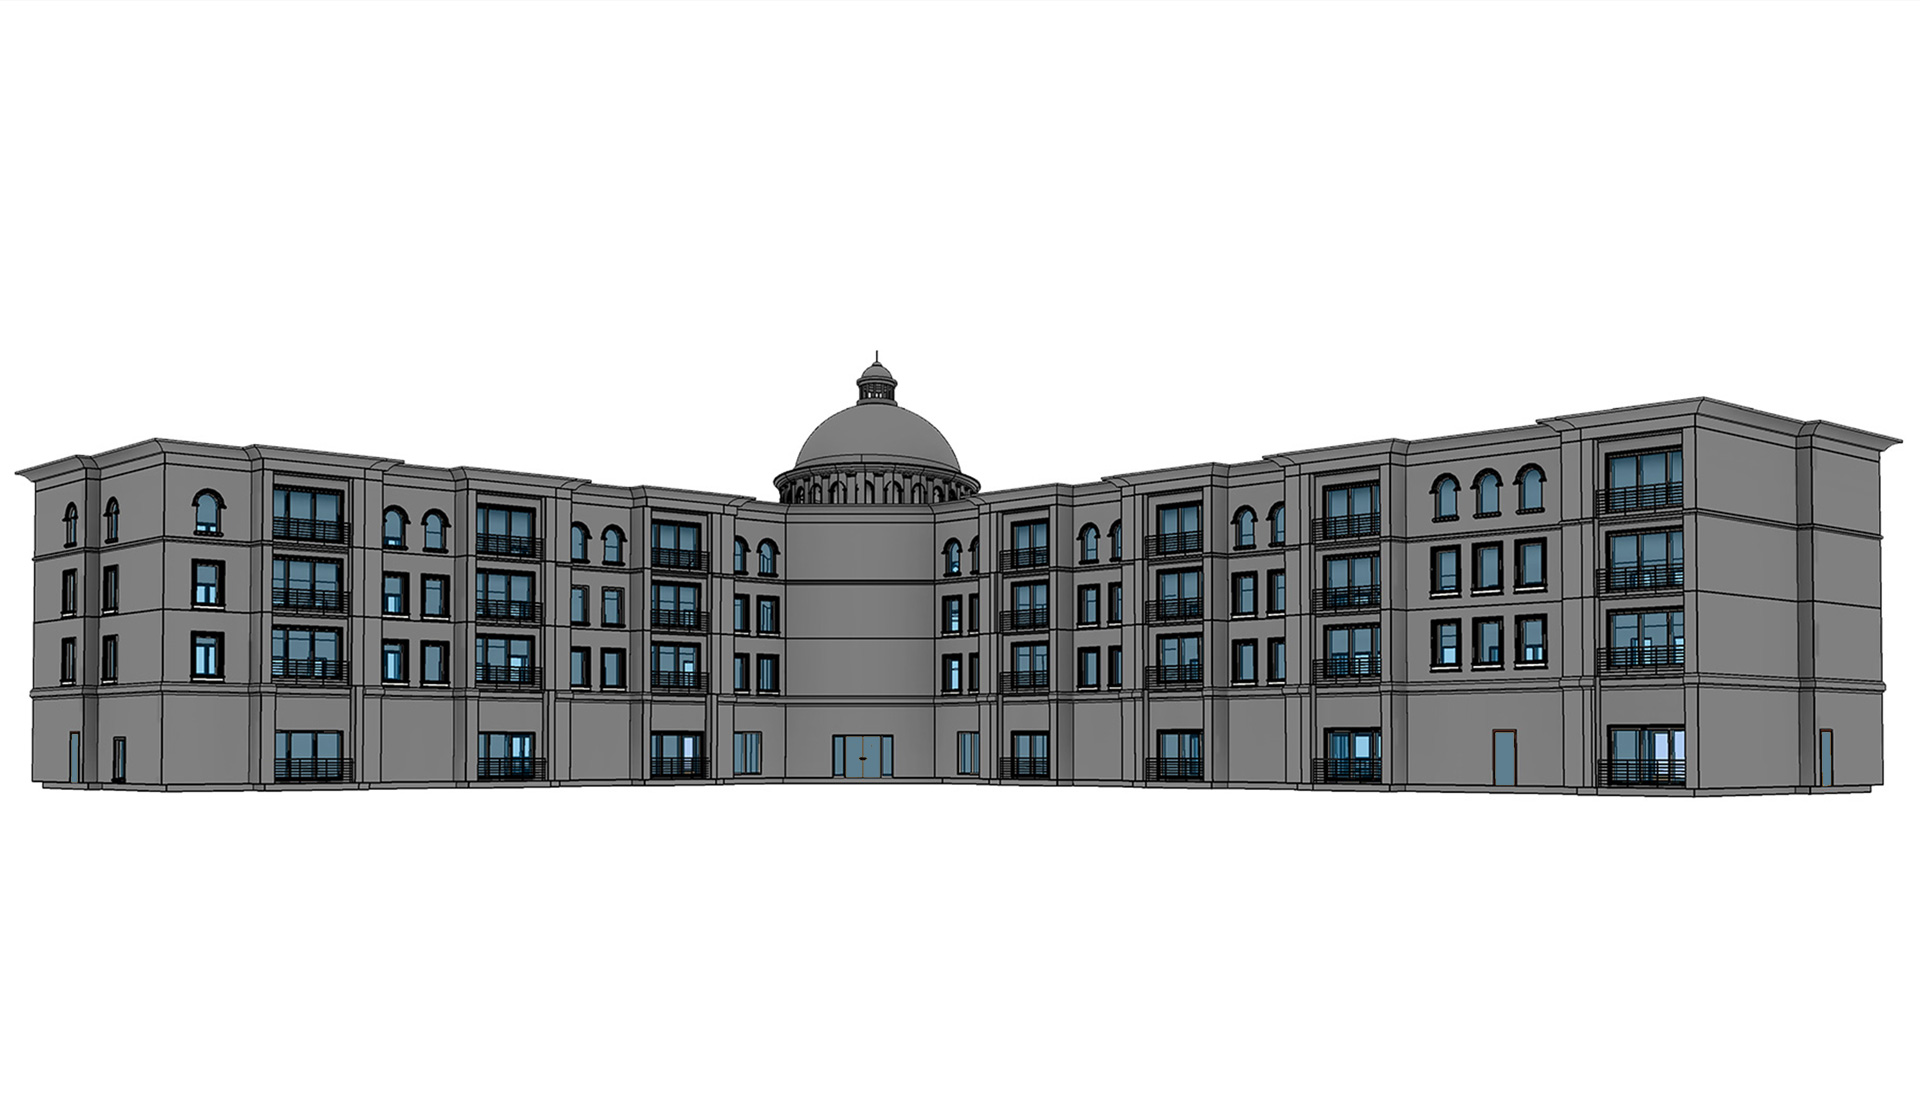 3D-architectural-model-of-hotel-building-project-Revit-Modeling-by-United-BIM-2